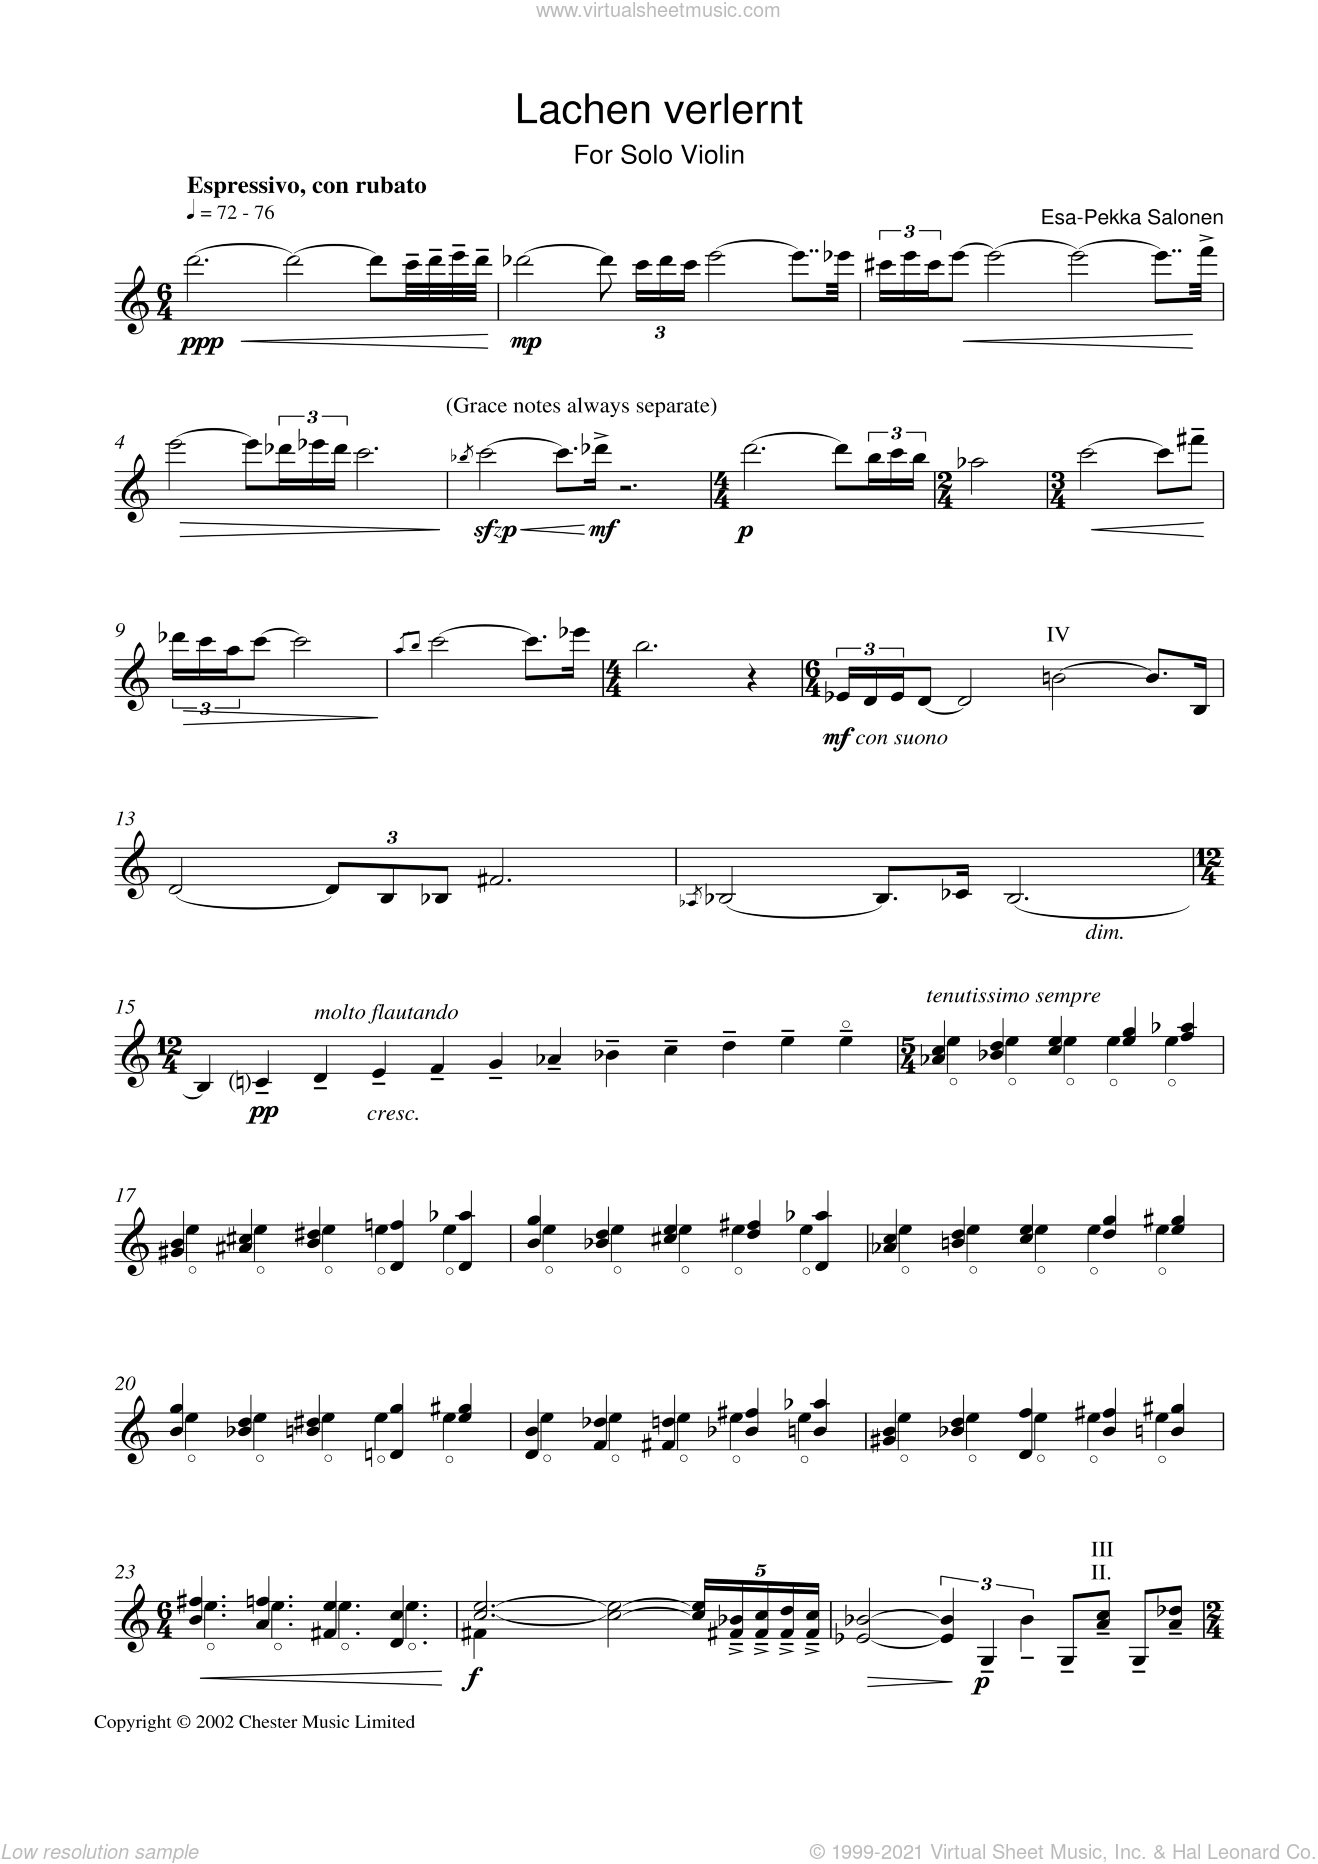 Lachen Verlernt sheet music for violin solo by Esa-Pekka Salonen. Score Image Preview.